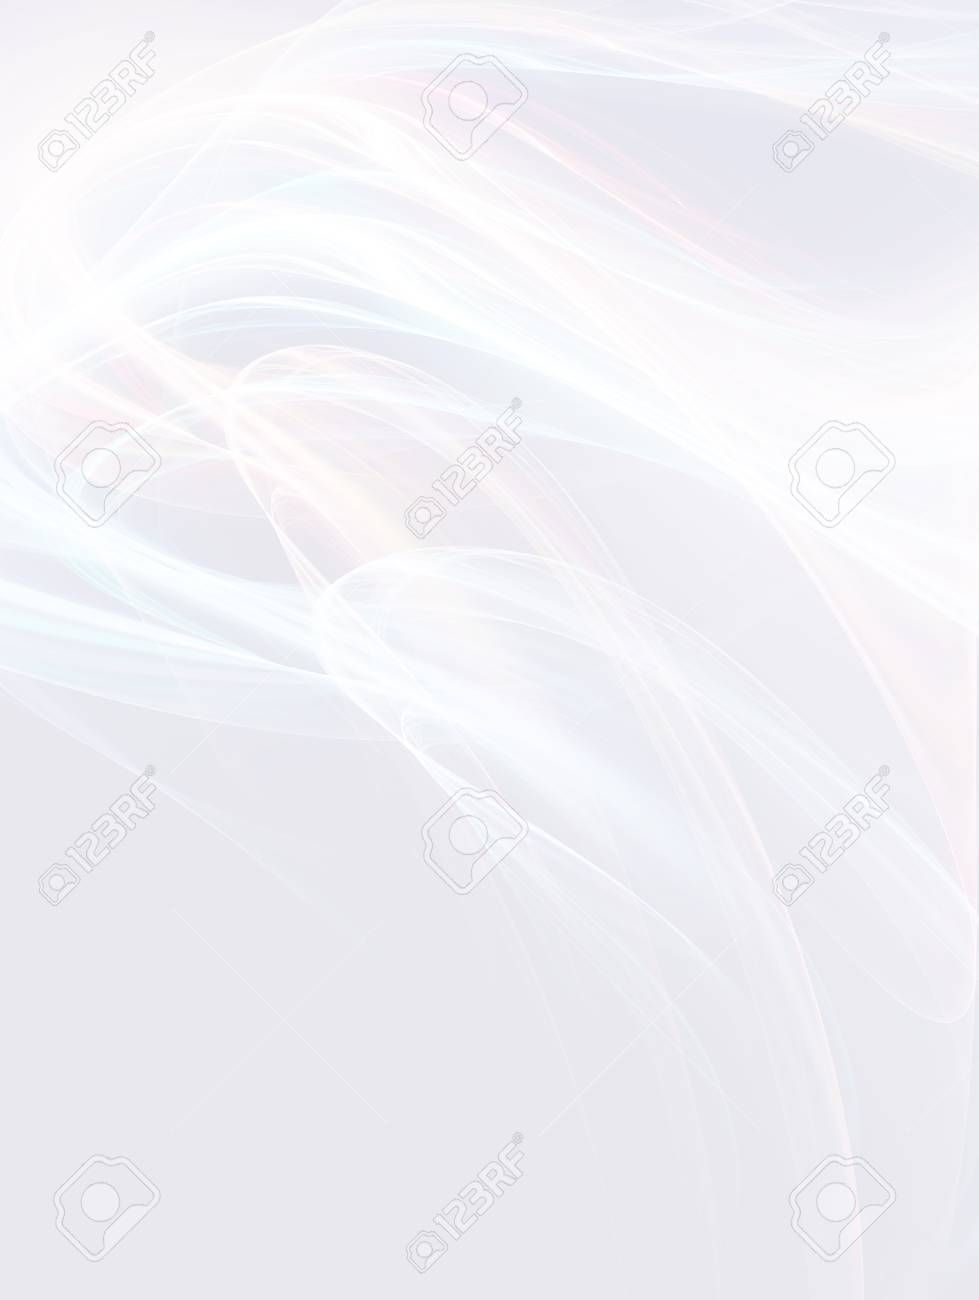 abstract white background with smooth lines ,